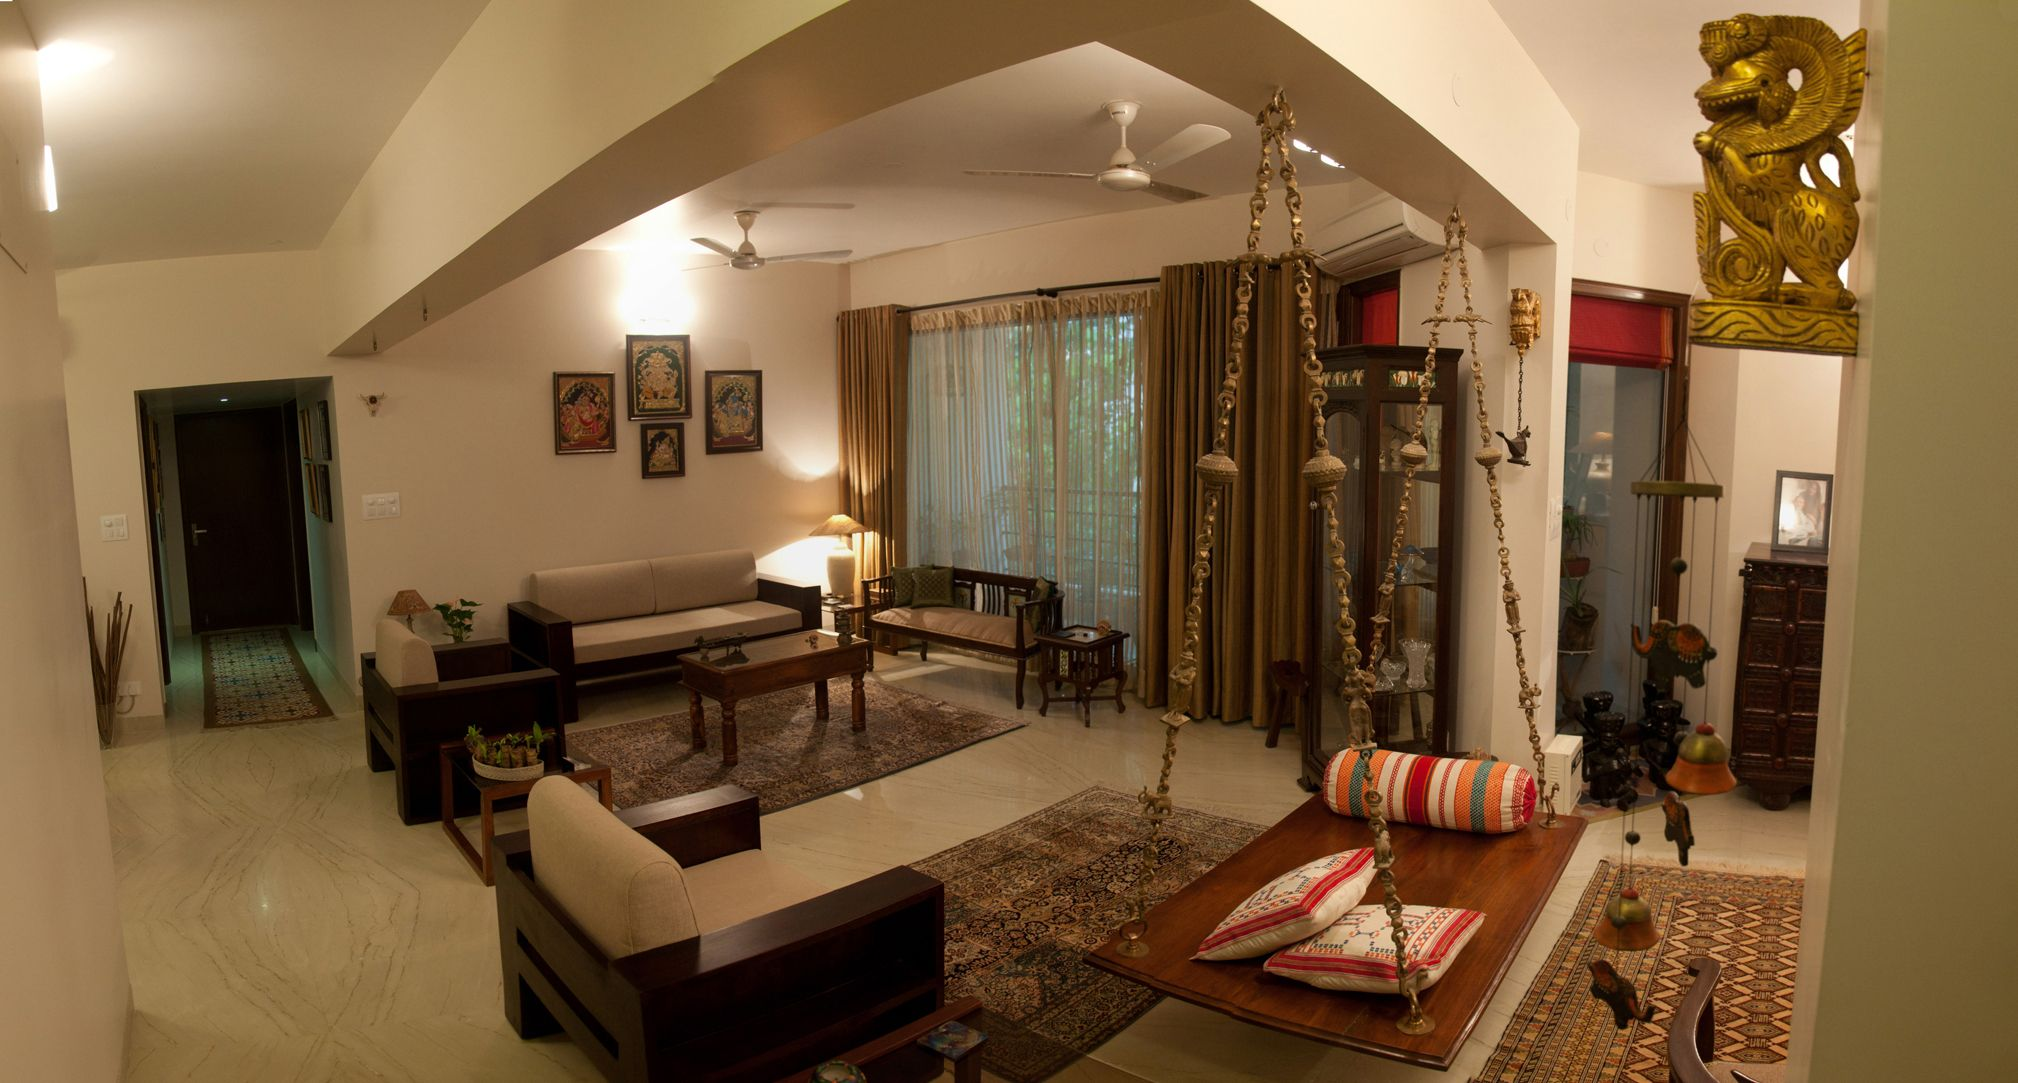 Interior Design For An Apartment In Delhi. We Worked On